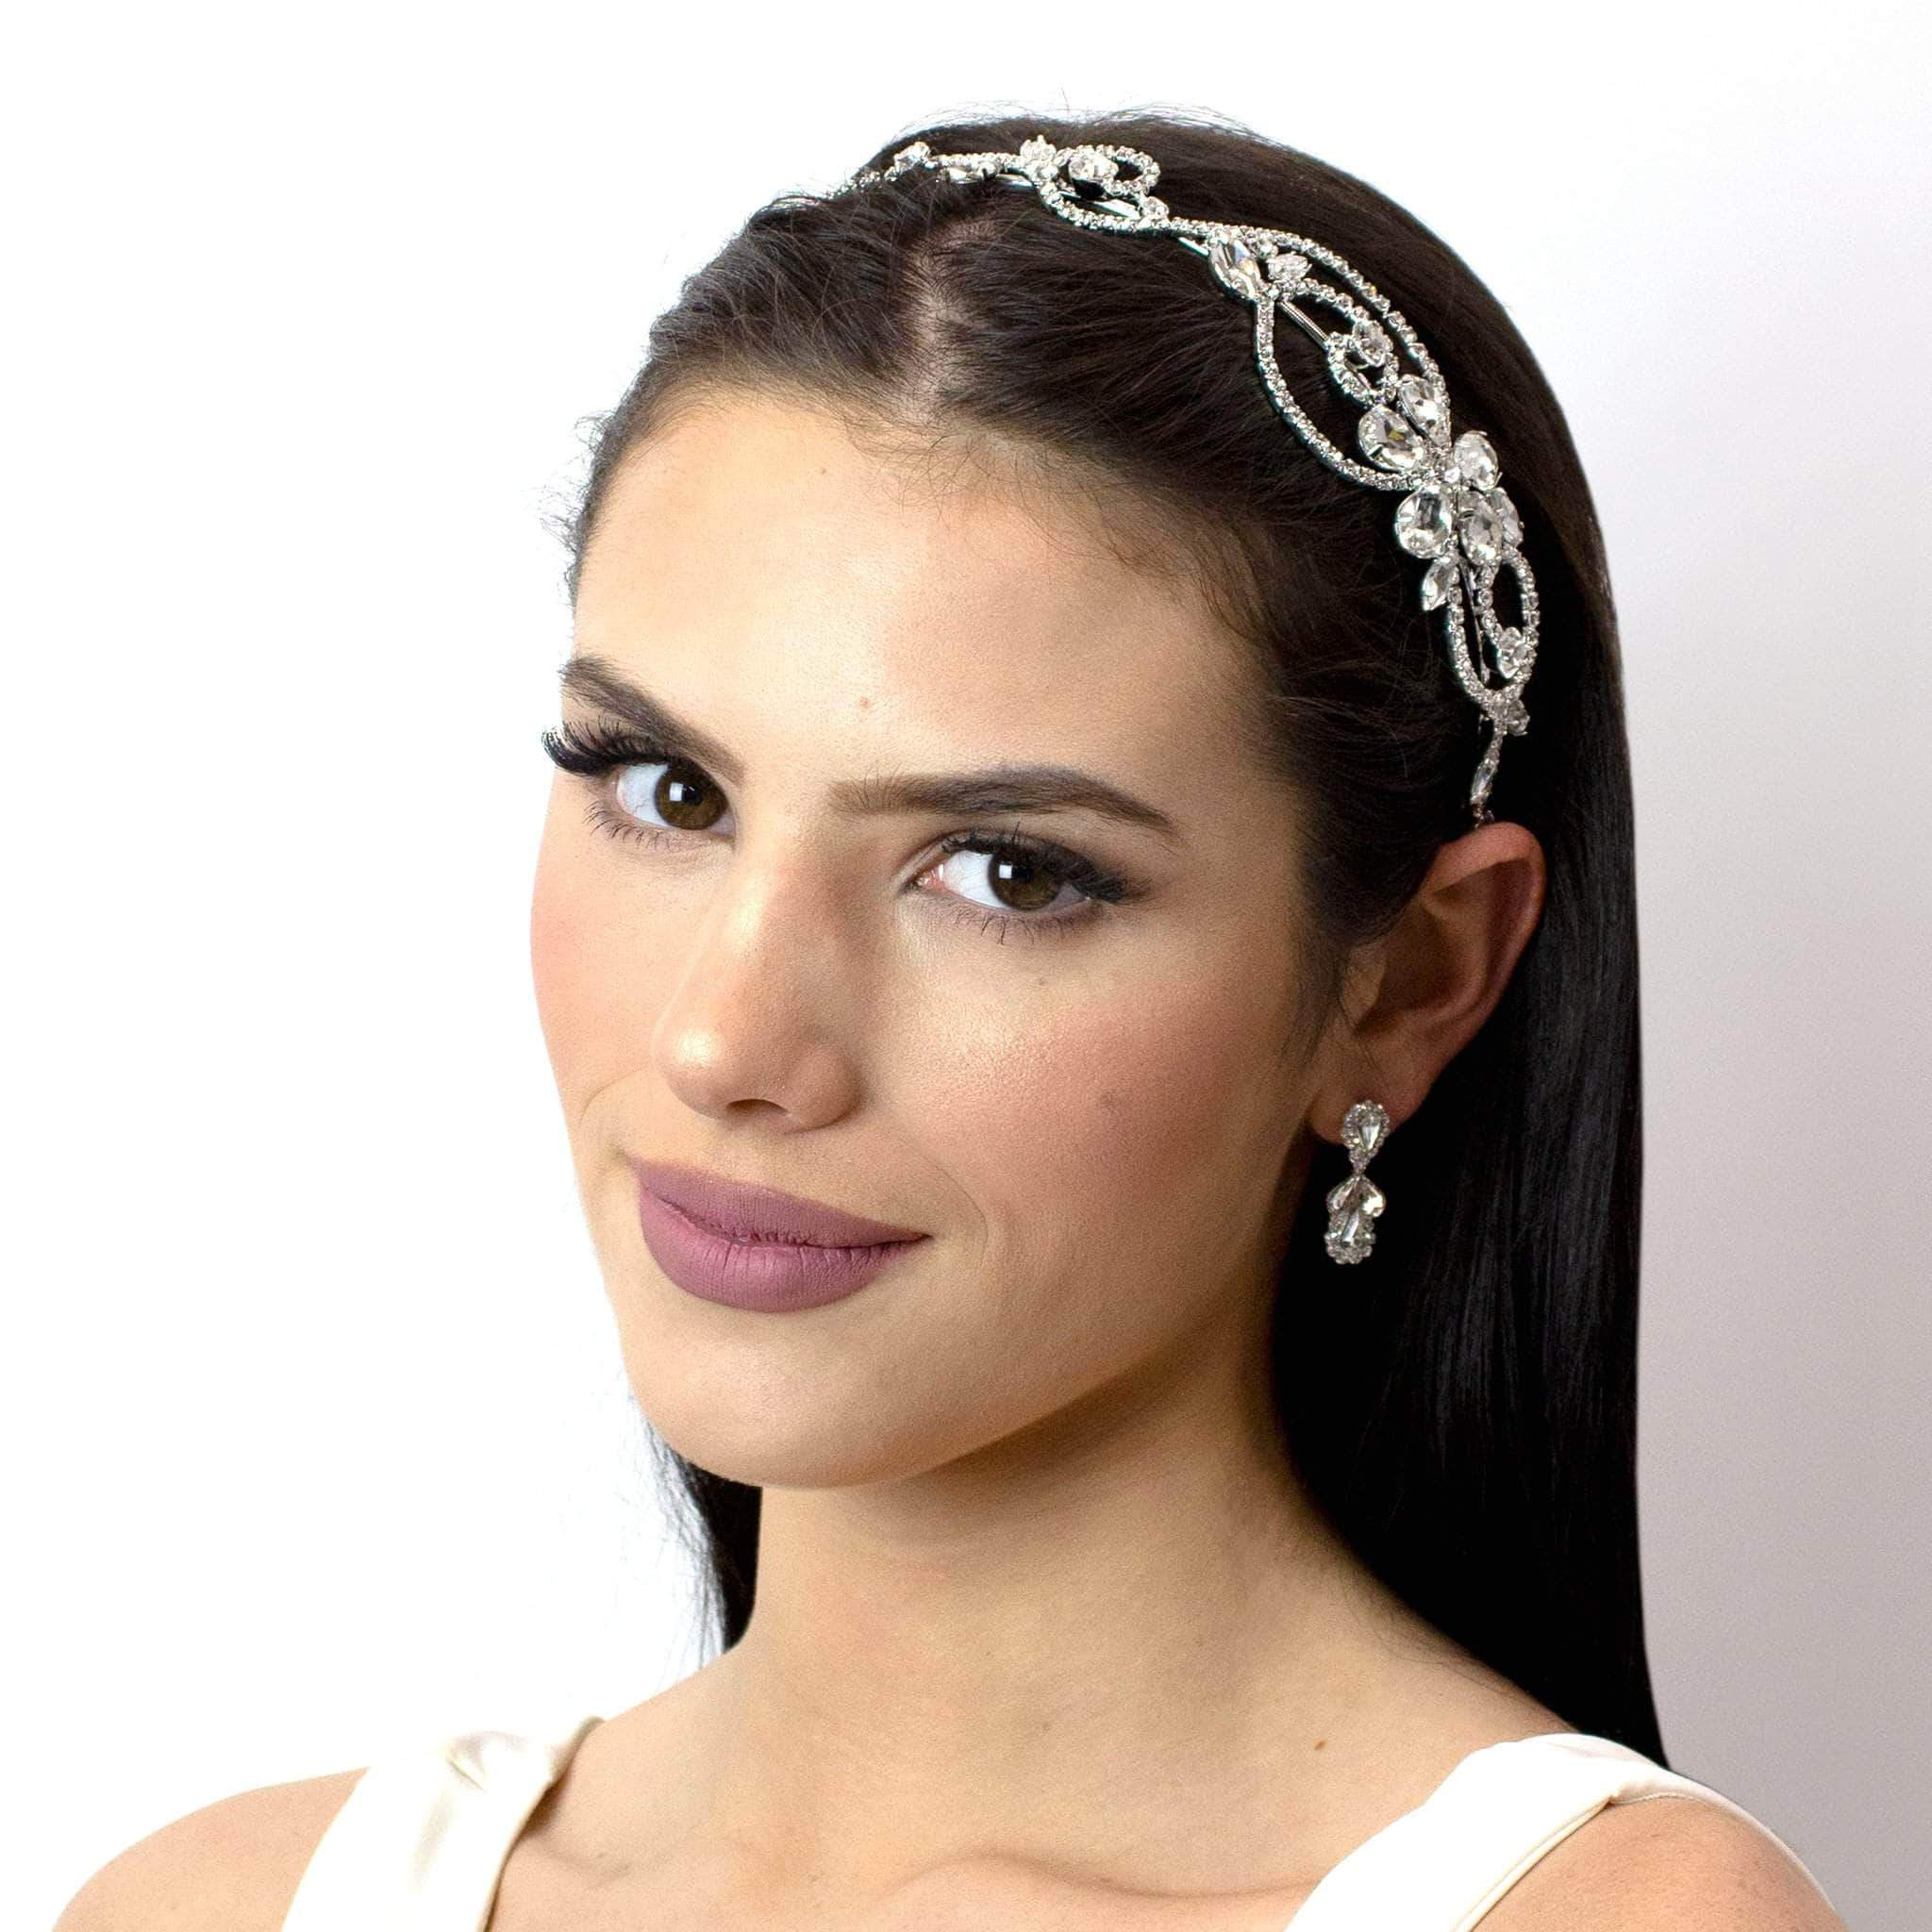 Headbands #16846 - Blooming Headband